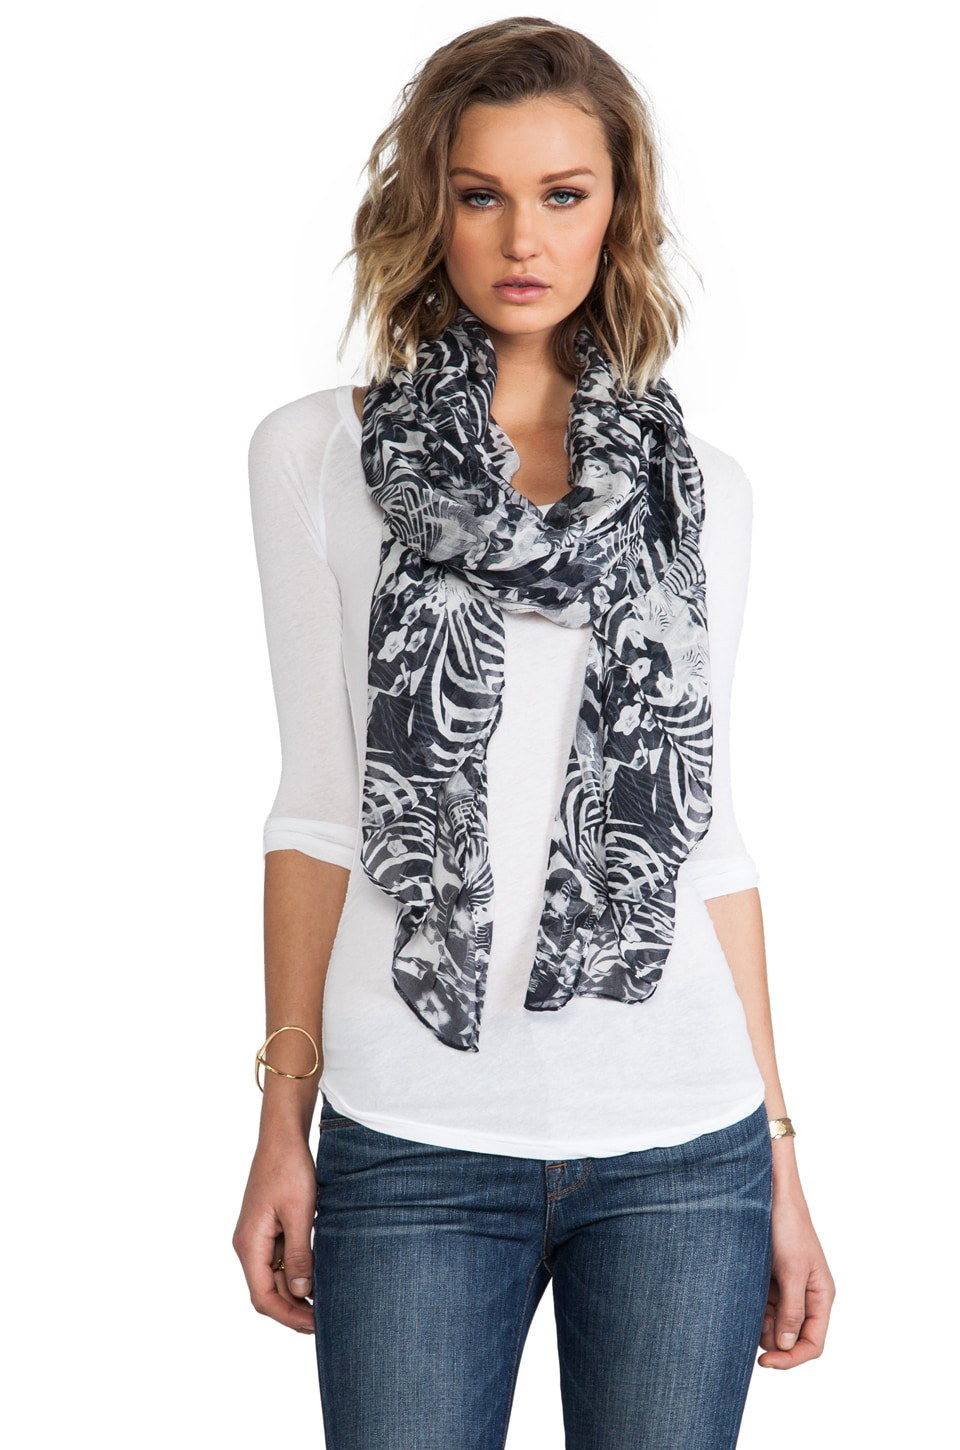 FRONT ROW SOCIETY Cashmere Blend Scarf in Zebra